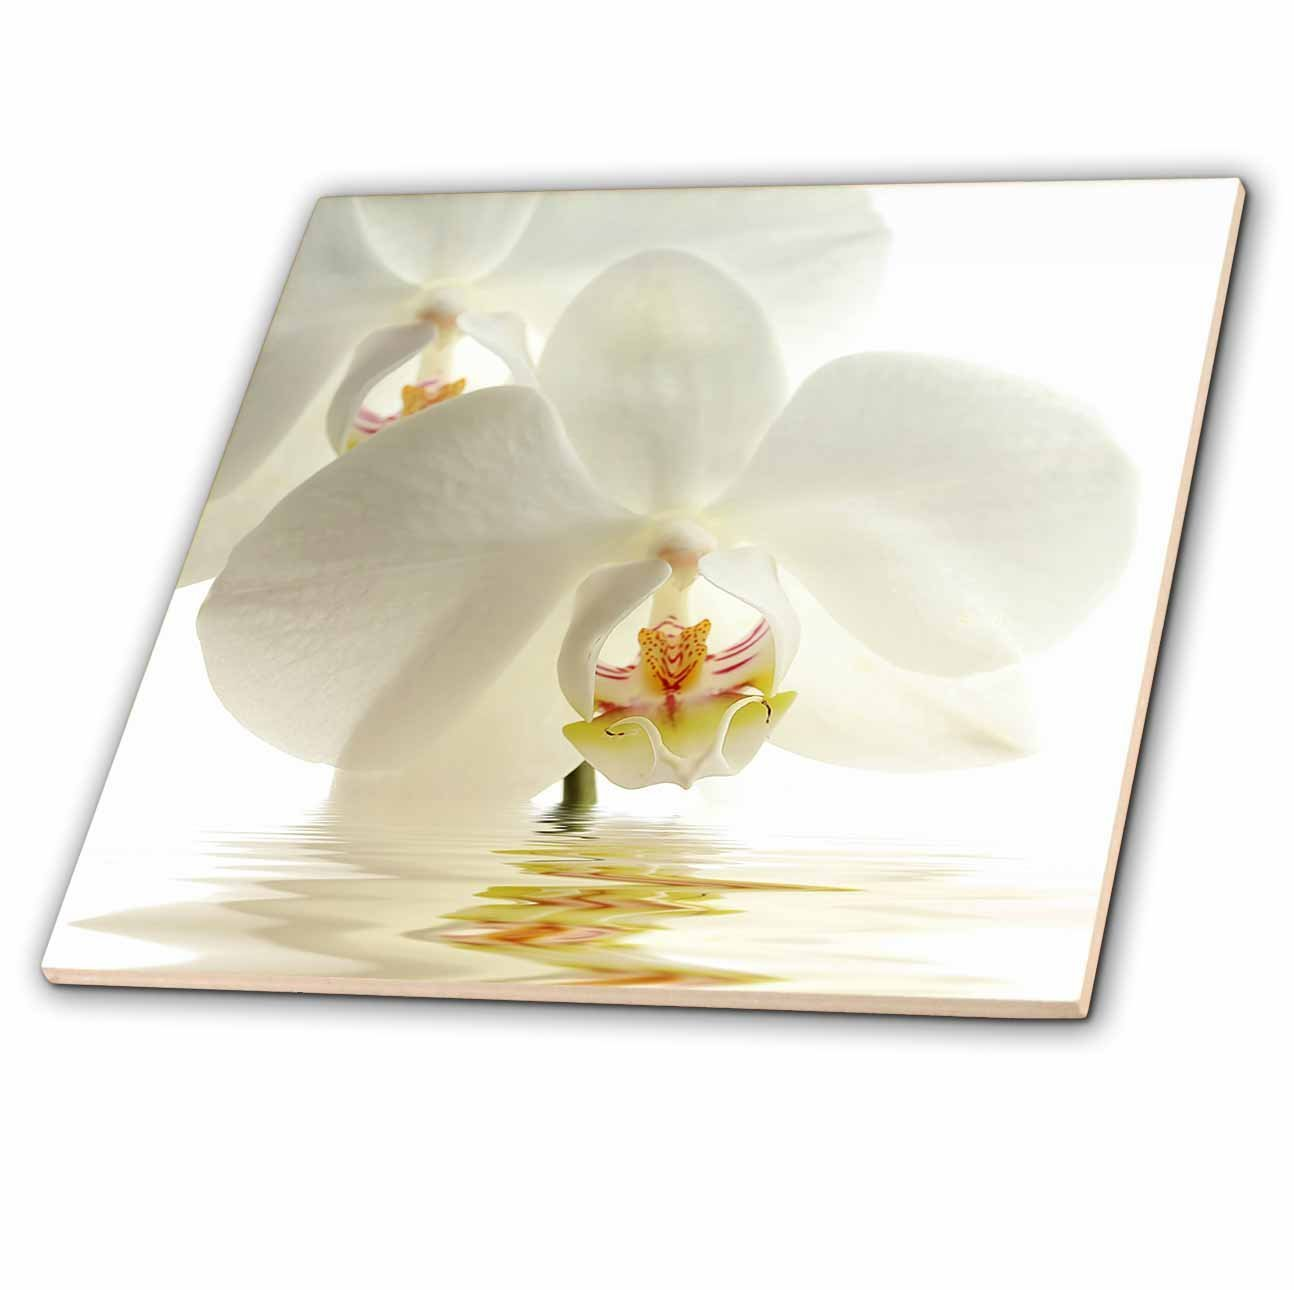 Buy 3drose Uta Naumann Photography Flowers White Orchid Flower In